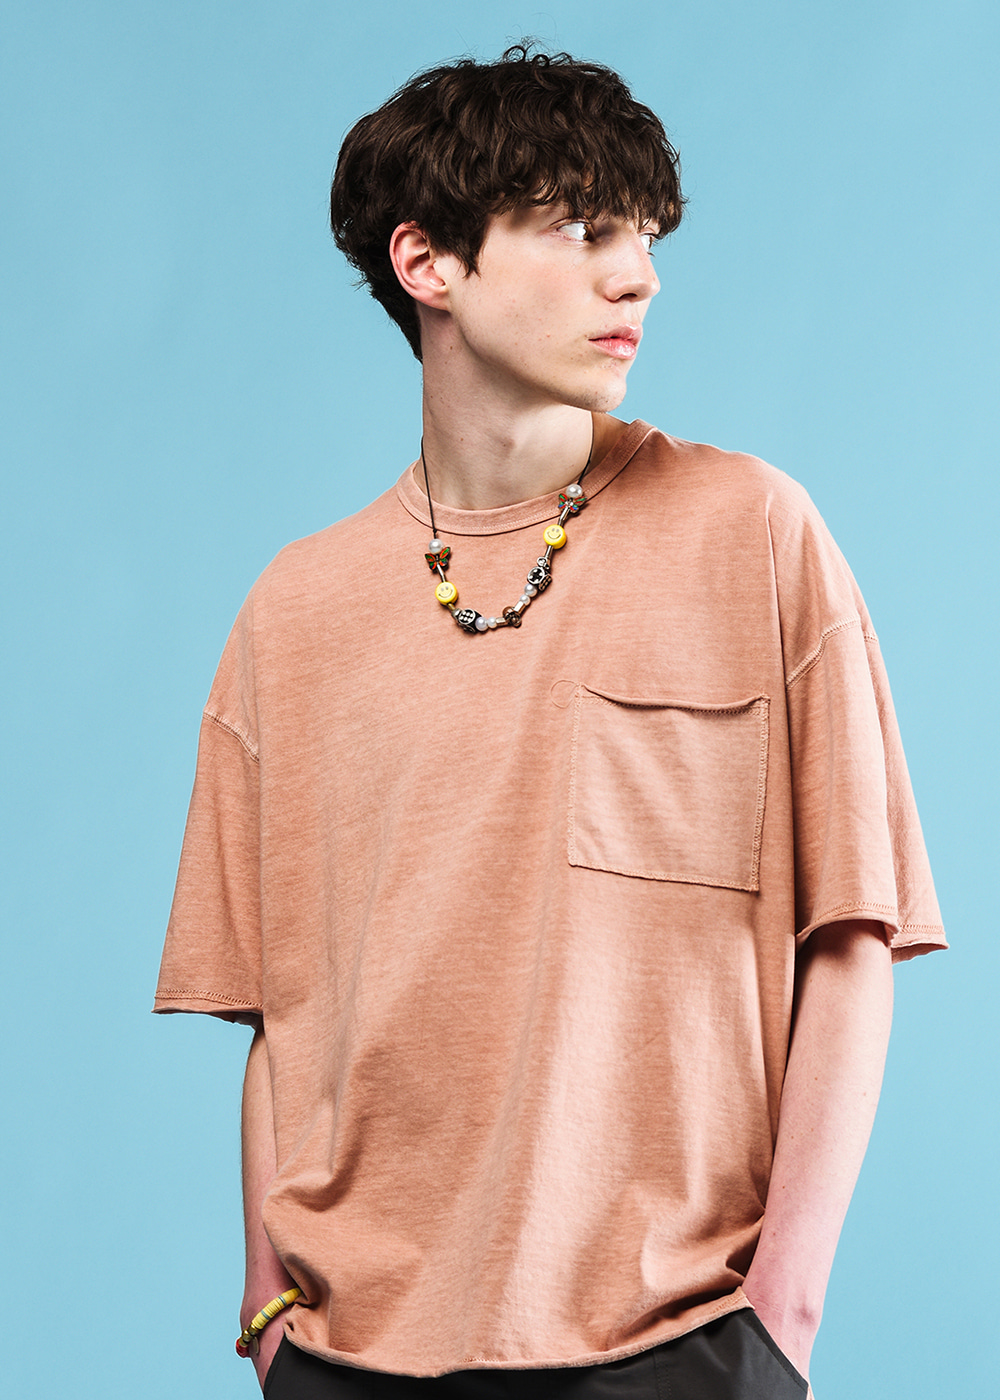 Stitches half T-shirt [indigo pink]